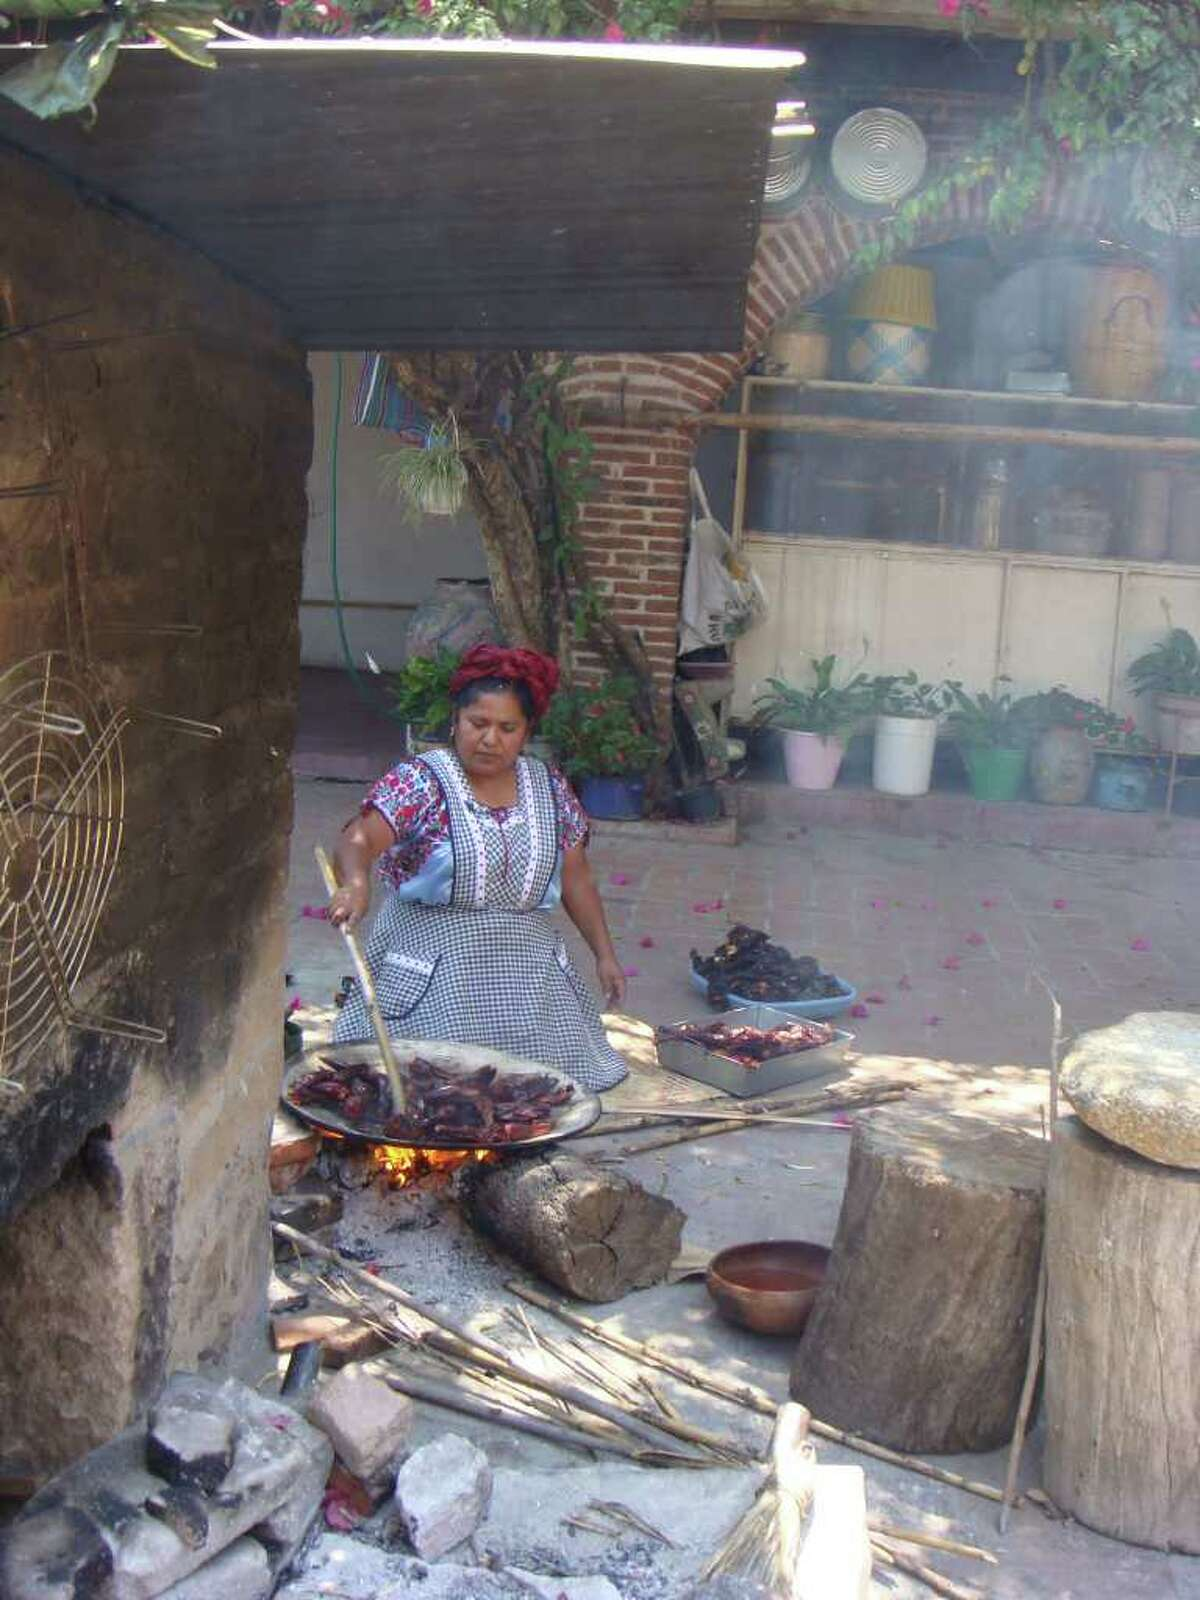 Traveling Latin America in search of the culinary past and present.